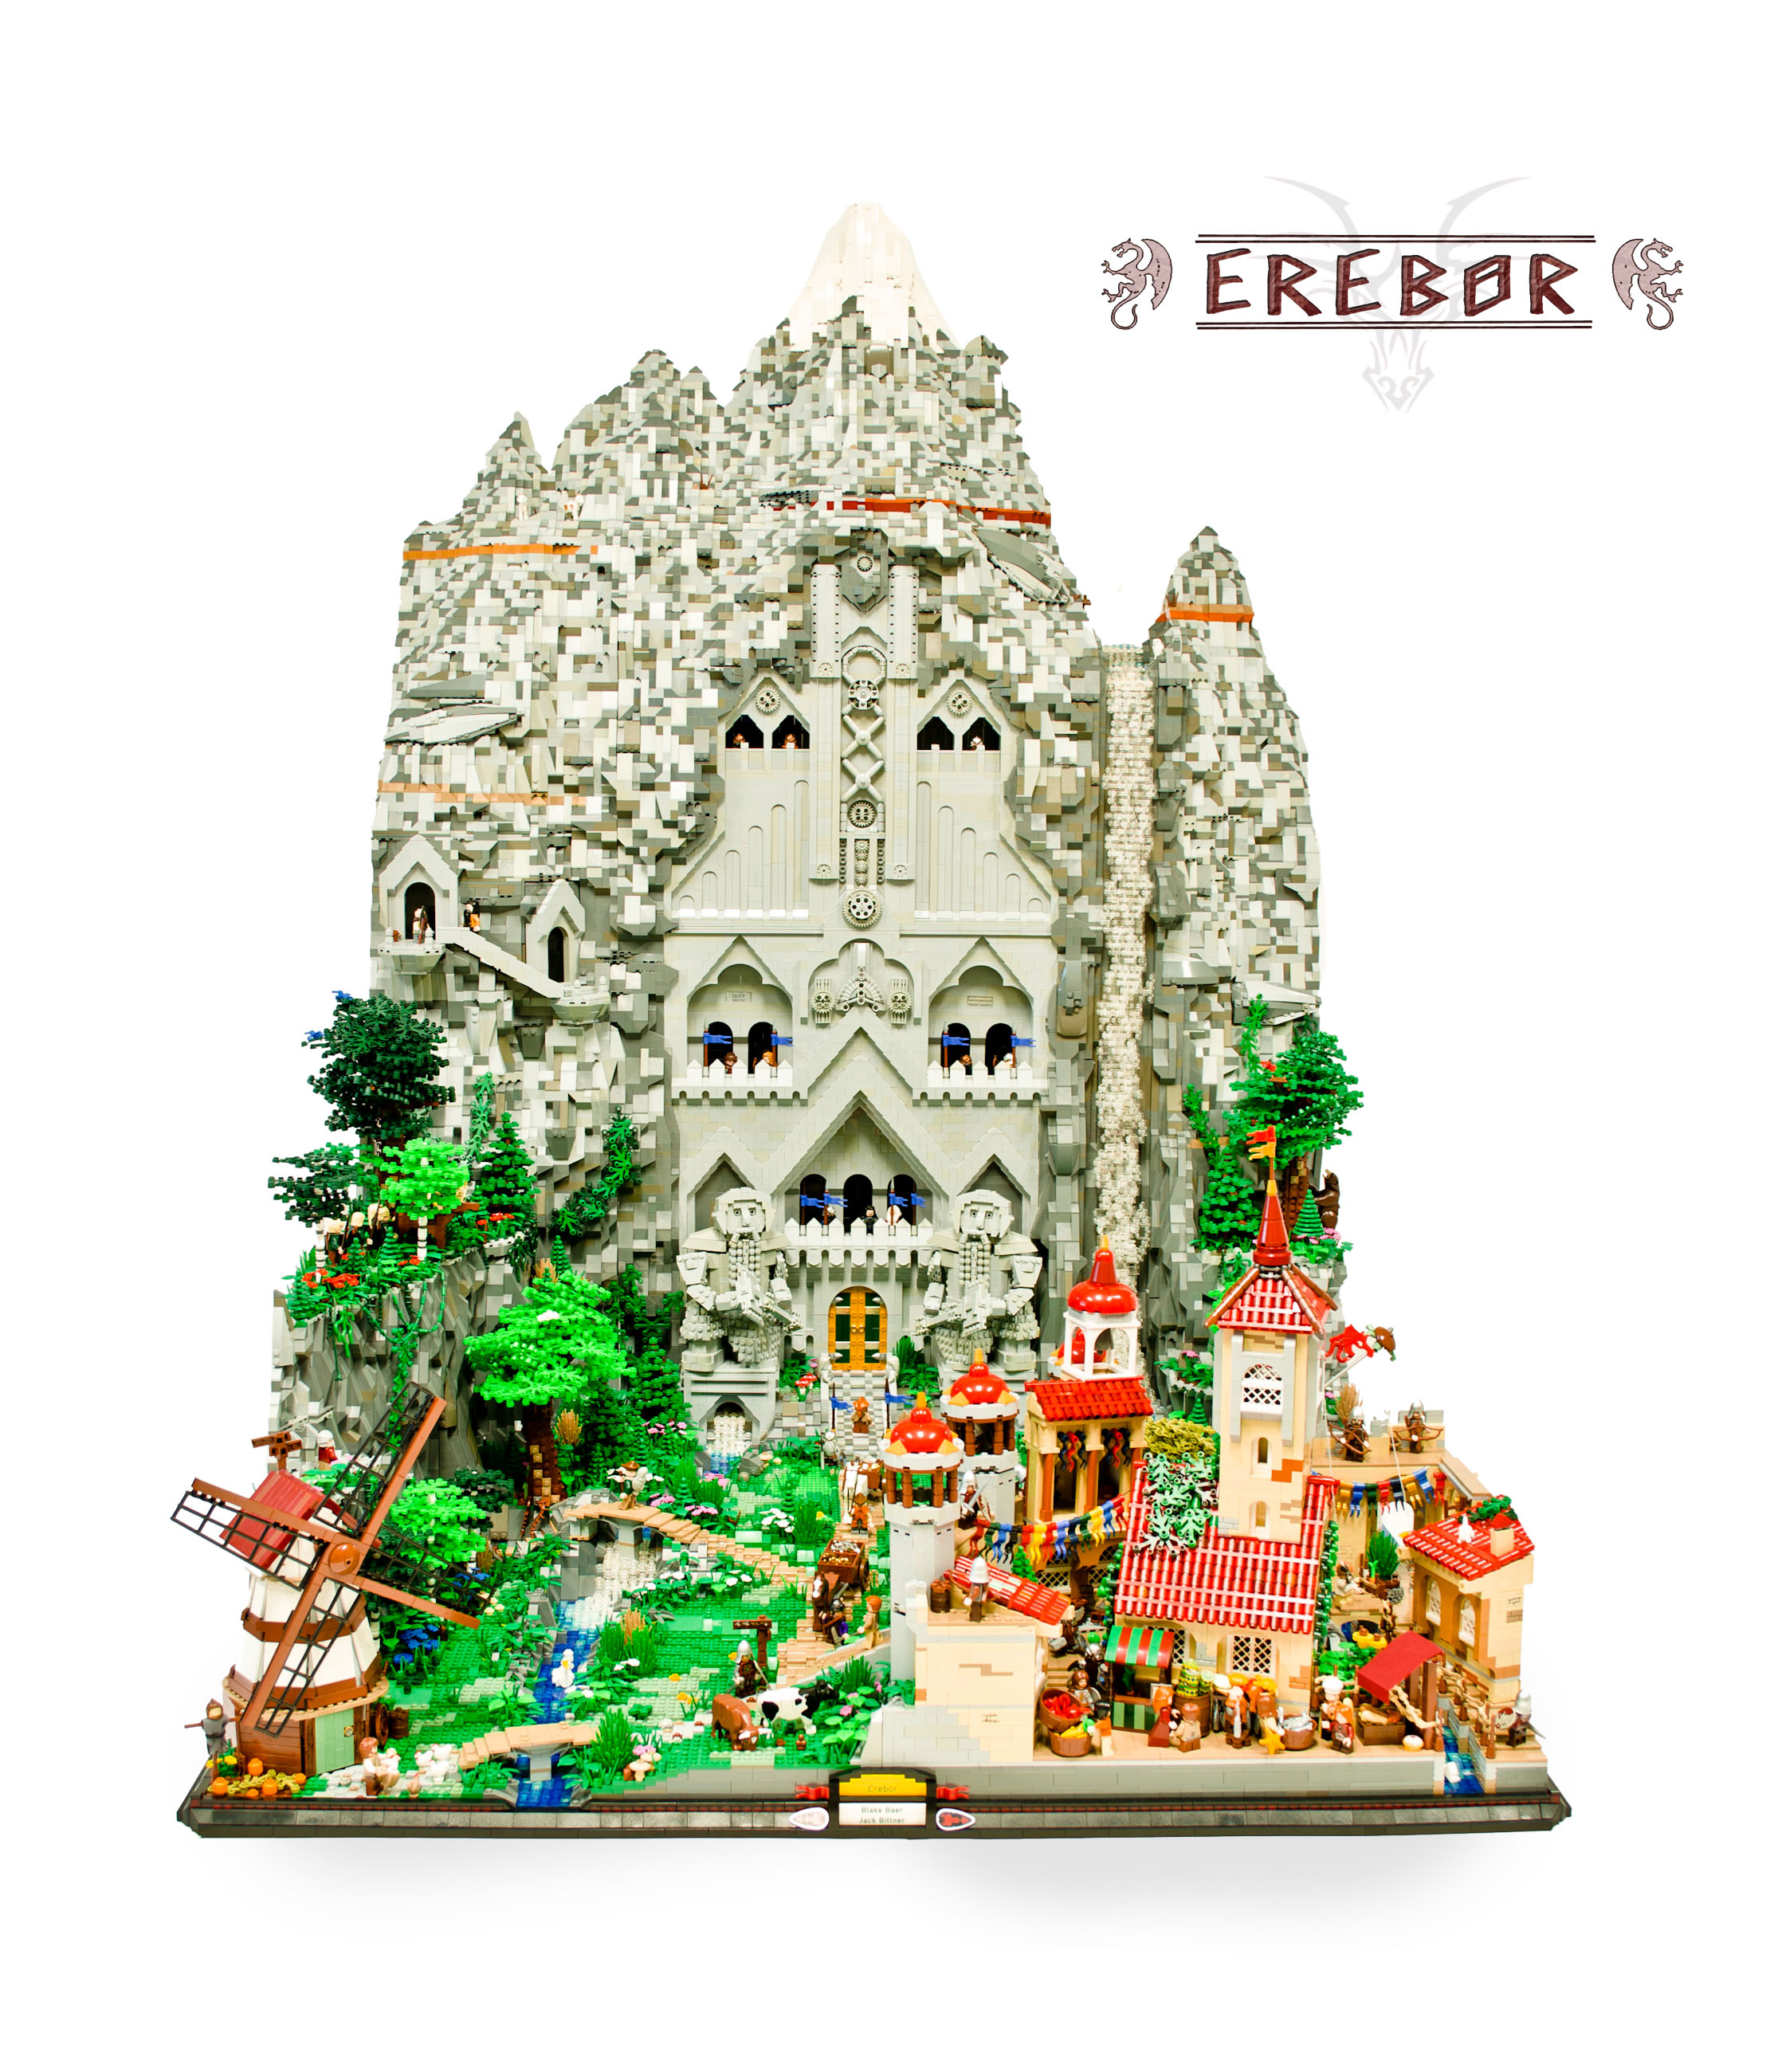 Lego Lord Of The Rings Bag End